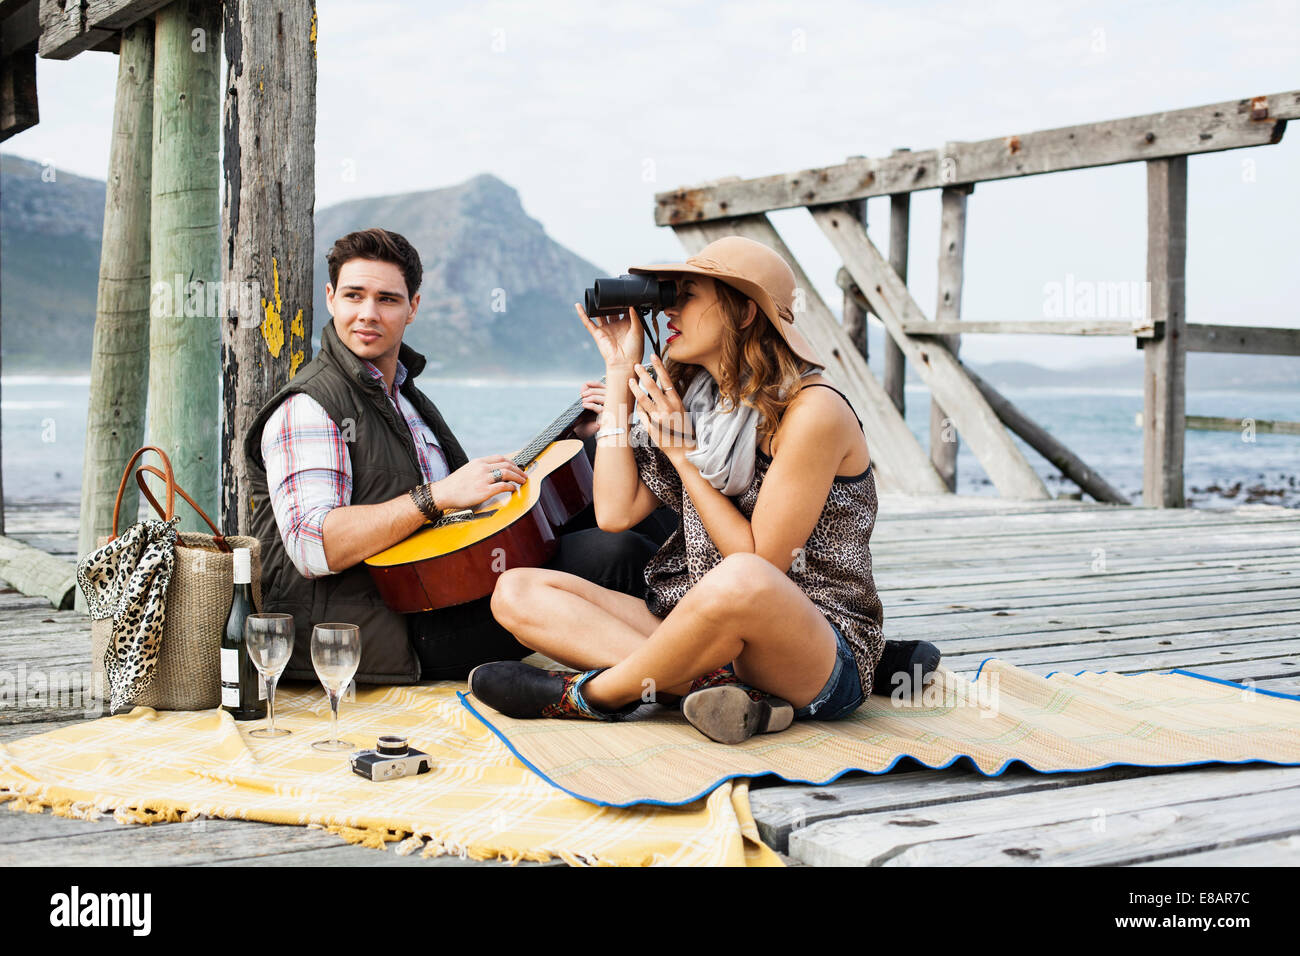 Young couple picnicing on old pier, Cape Town, Western Cape, South Africa - Stock Image